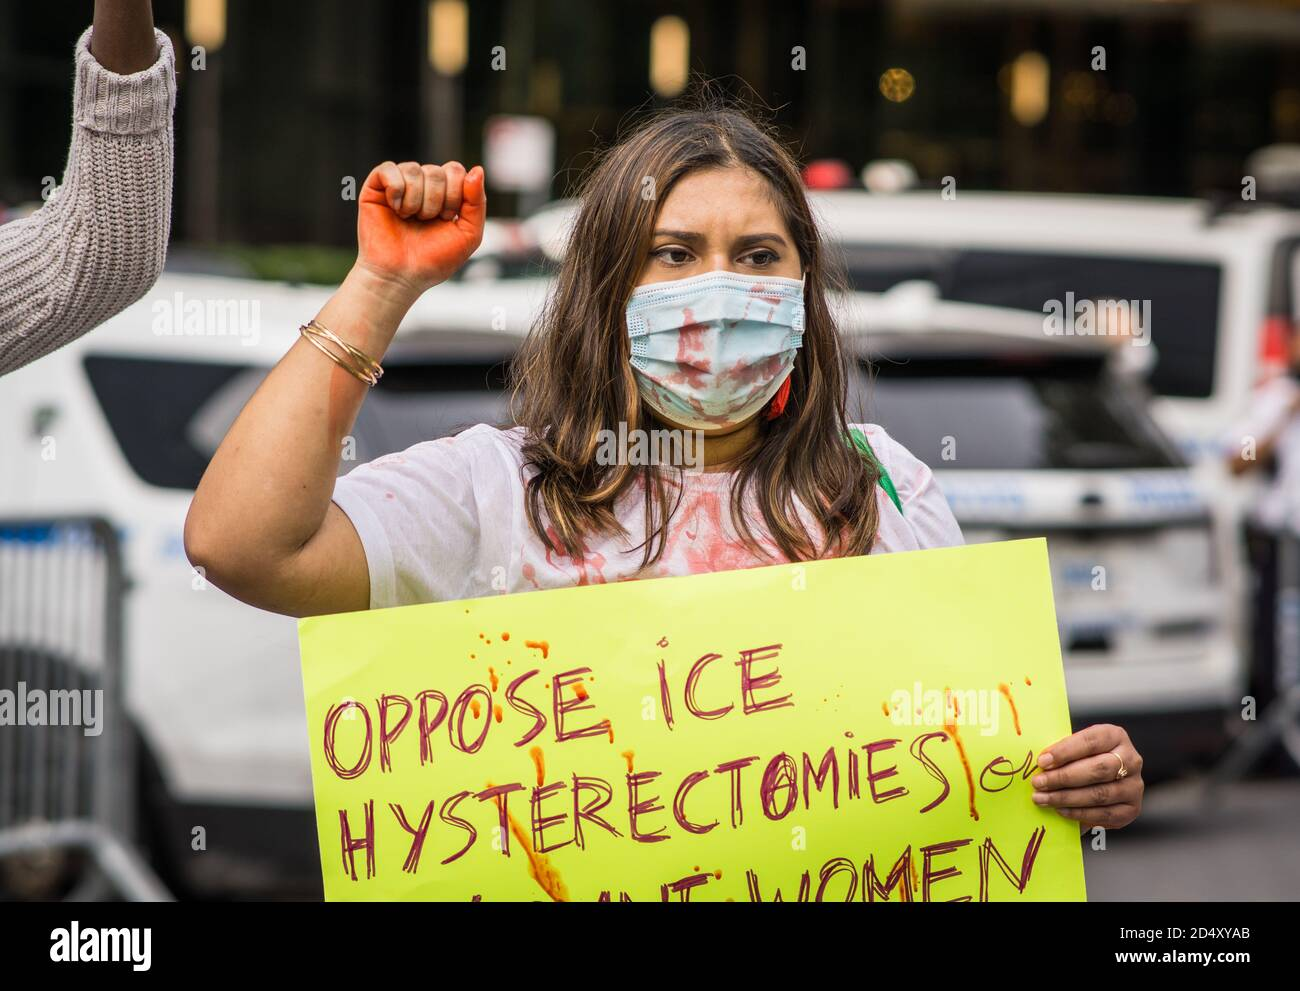 New York City, United States. 11th Oct, 2020. Af3irm is a national group of women fighting anti imperialism and anti oppression in all it's form. Today a small group of women held a demonstration calling attention to the end of the historical theft of reproduction of women of color, hysterectomies on immigrate women, and the confirmation of U.S. Supreme Justice Amy Coney Barrett. (Photo by Steve Sanchez/Pacific Press) Credit: Pacific Press Media Production Corp./Alamy Live News Stock Photo